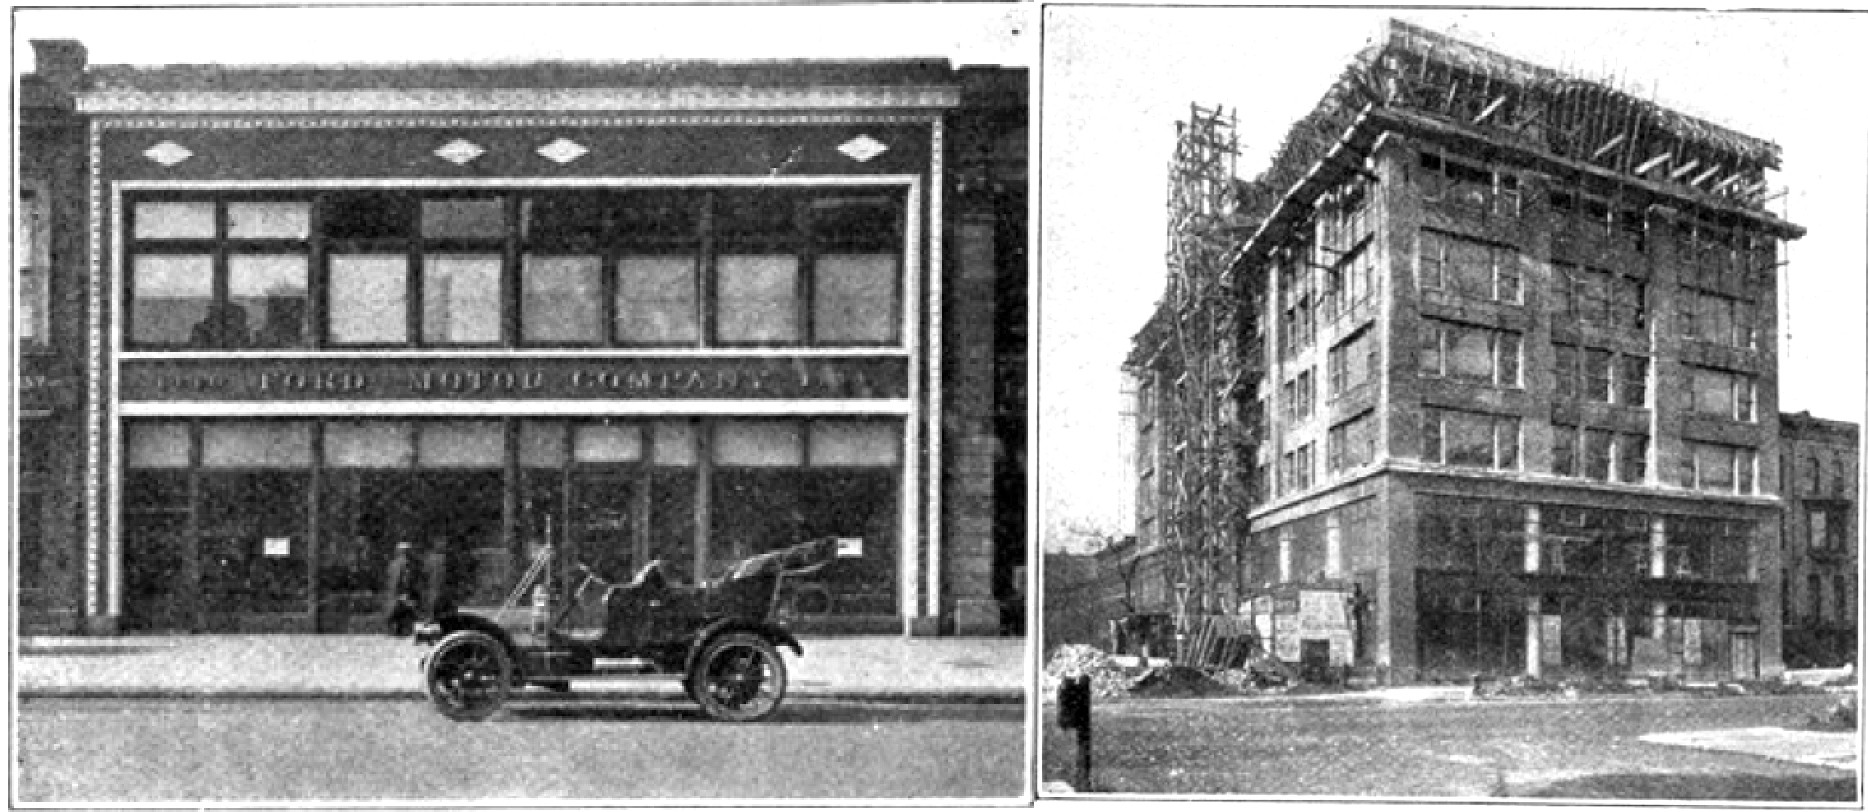 1905 1936 Automobile Row